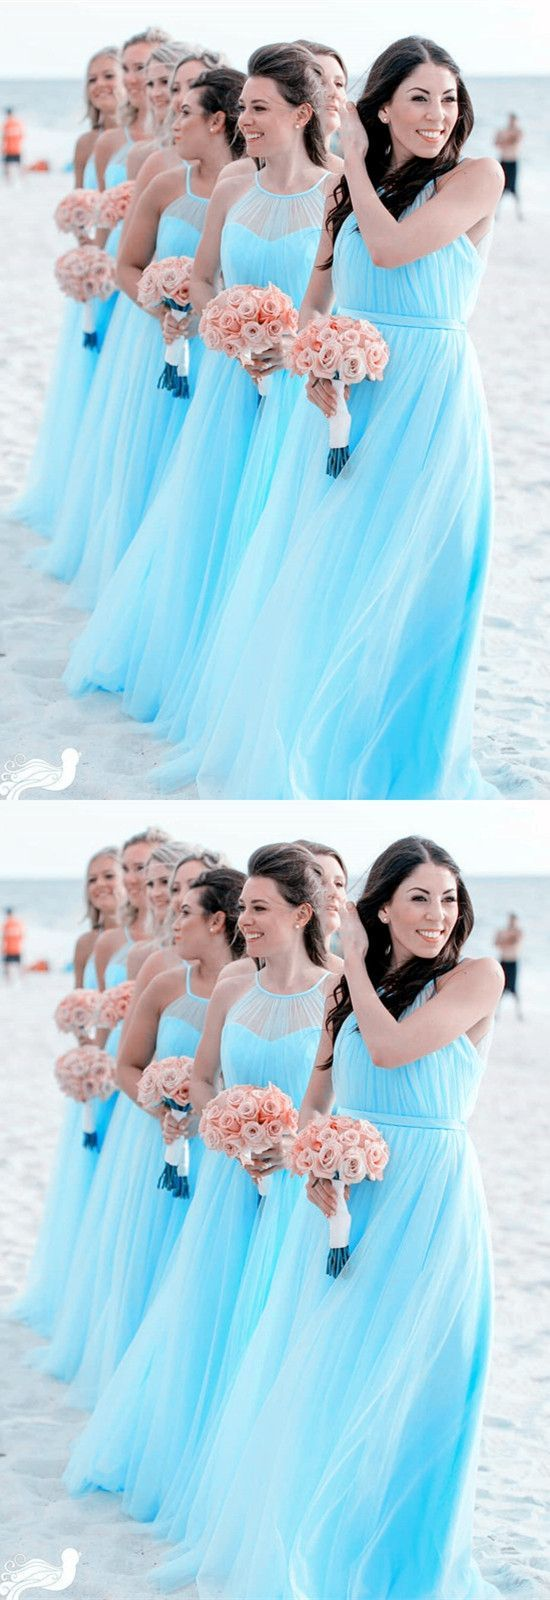 Elegant long tulle halter bridesmaid dresses for beach wedding m